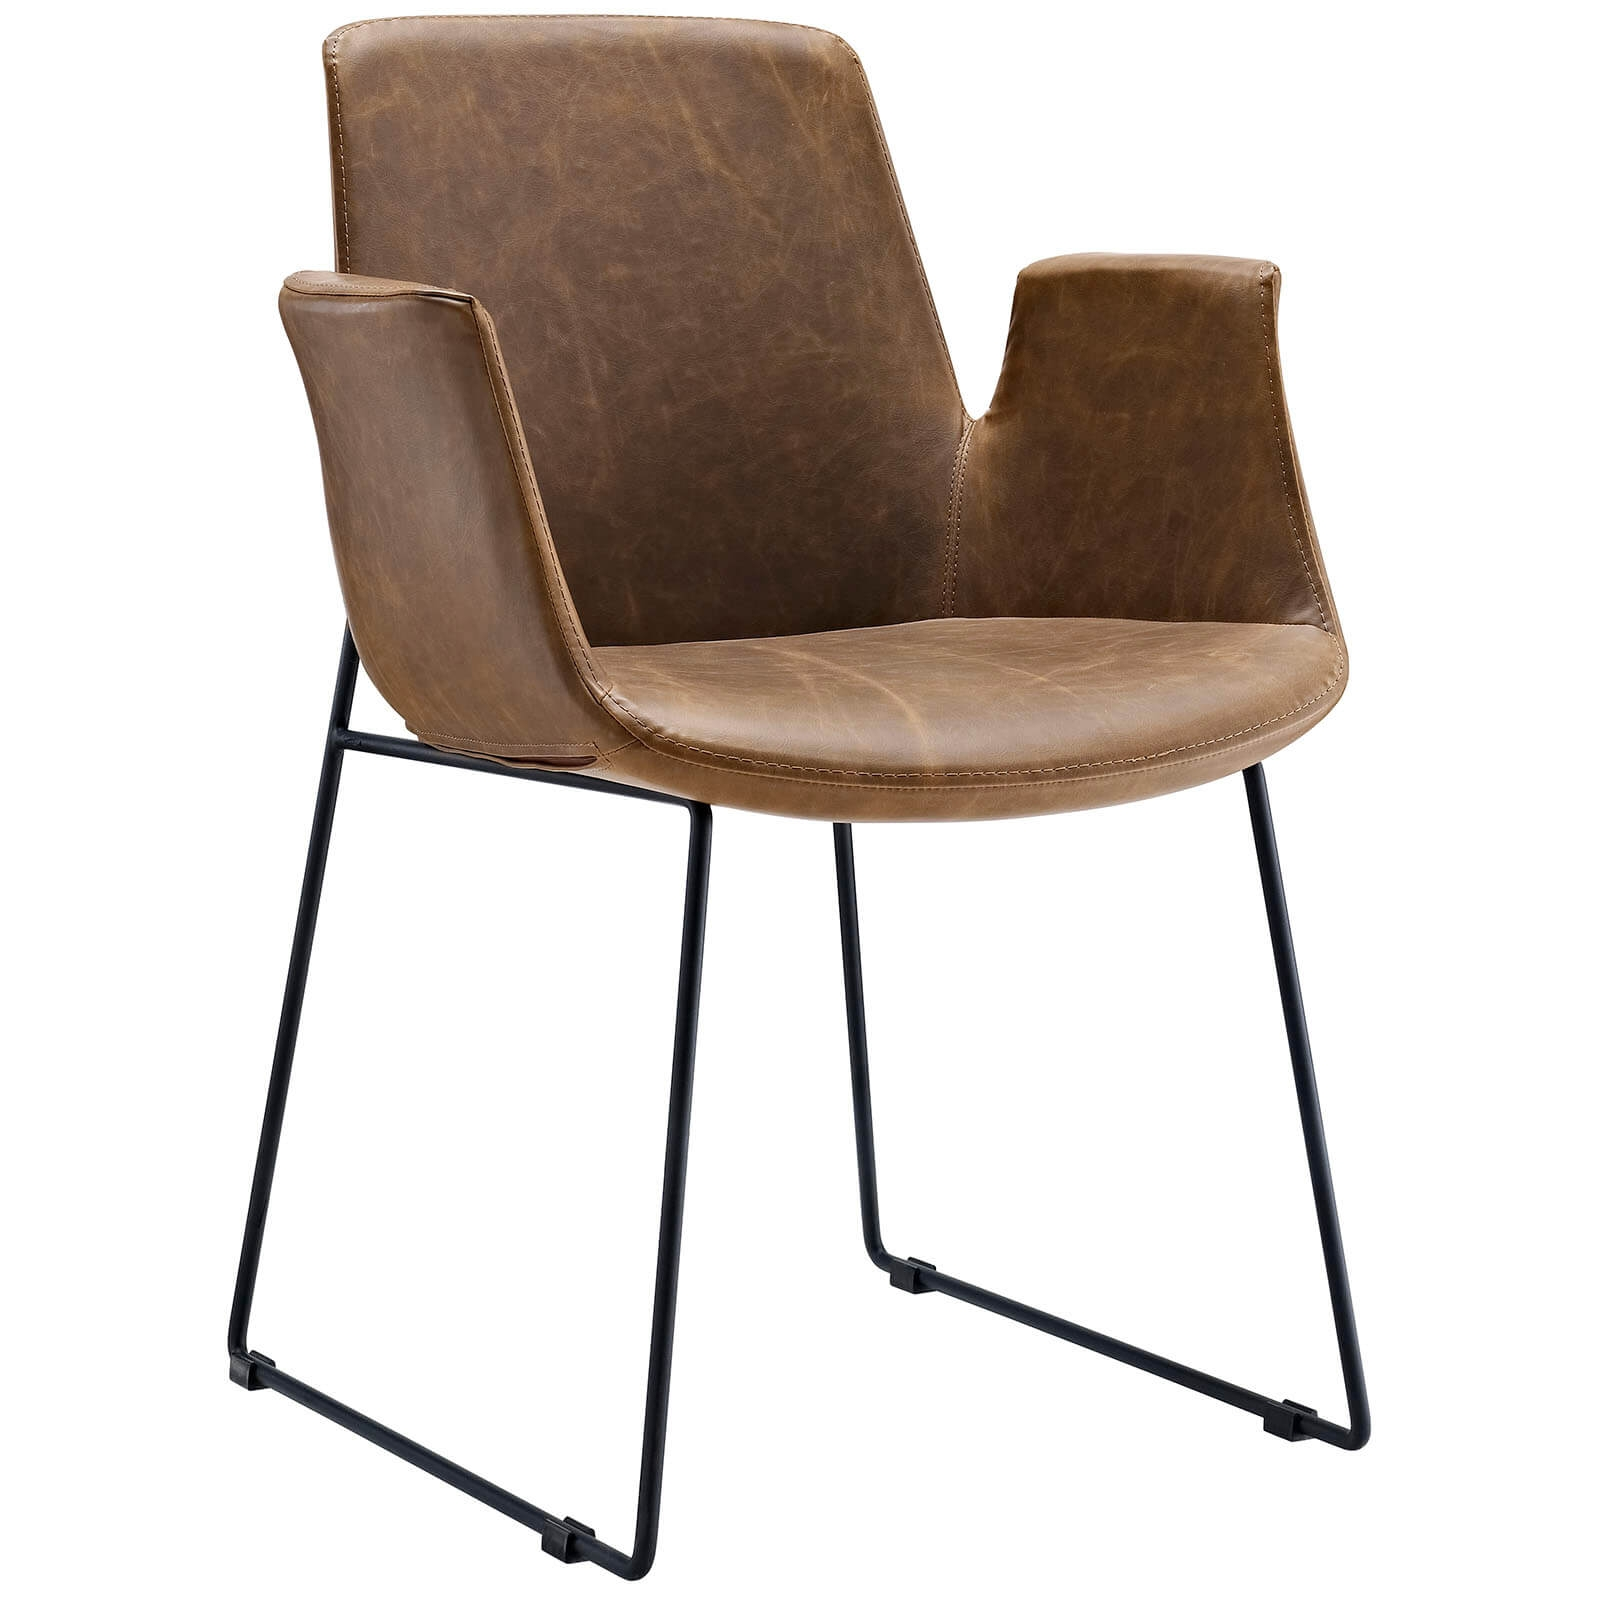 Office lounge chairs CUB EEI 1806 BRN DOM